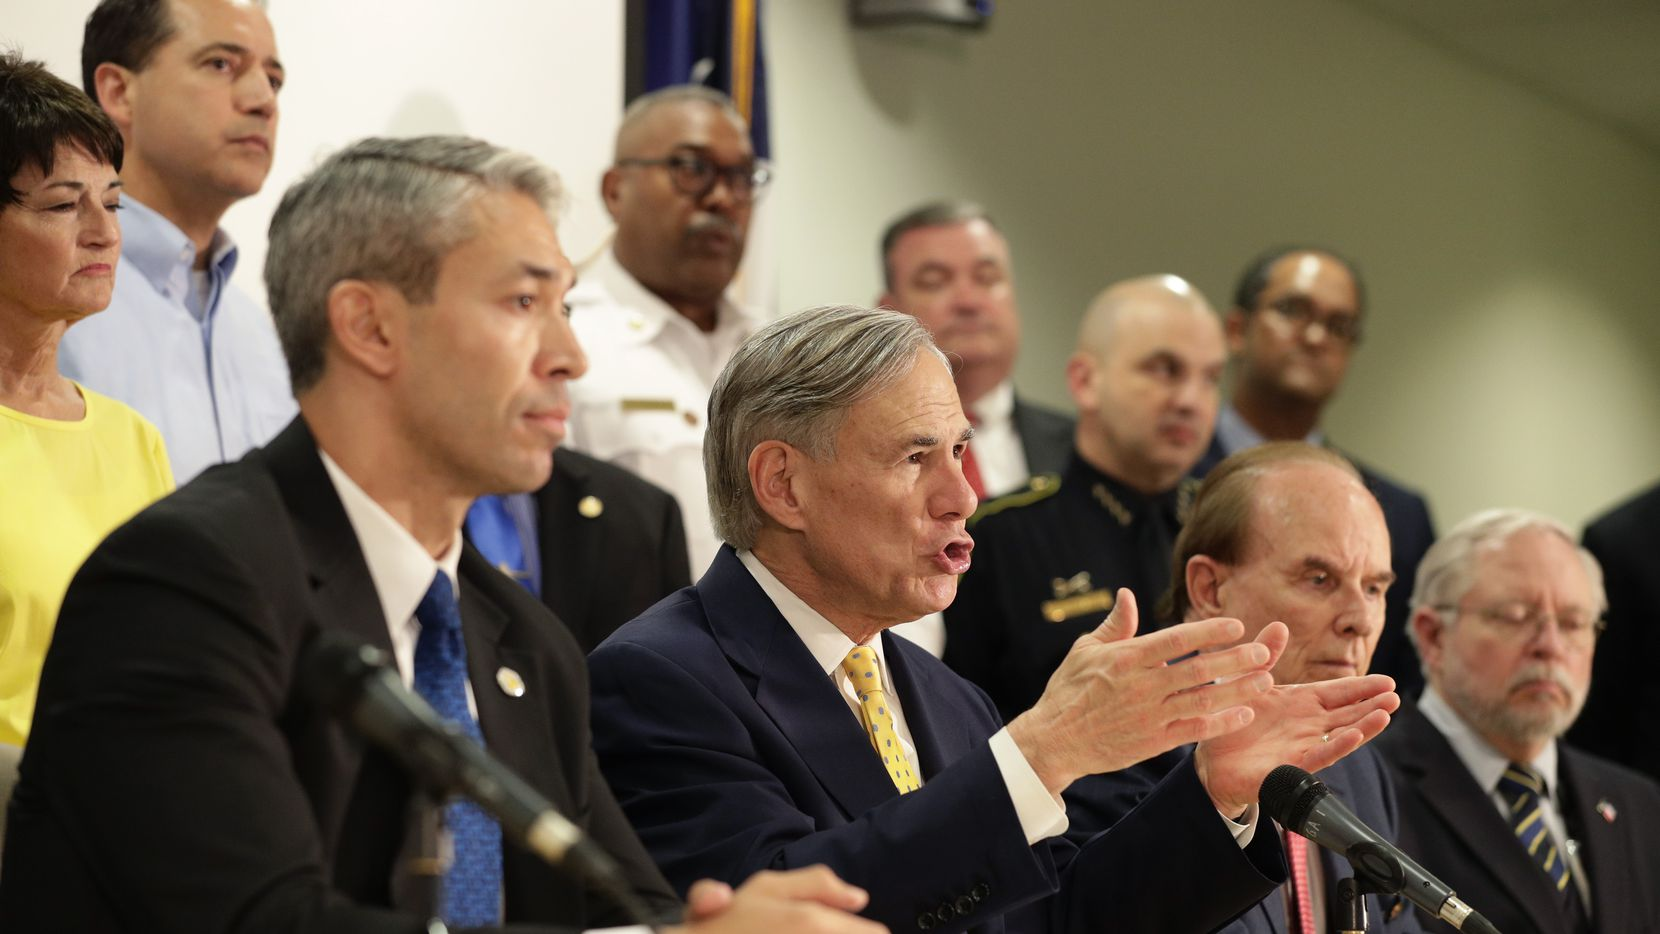 Texas Gov. Greg Abbott, center, is joined by state and city officials as he gives an update on the coronavirus outbreak, Monday, March 16, 2020, in San Antonio.